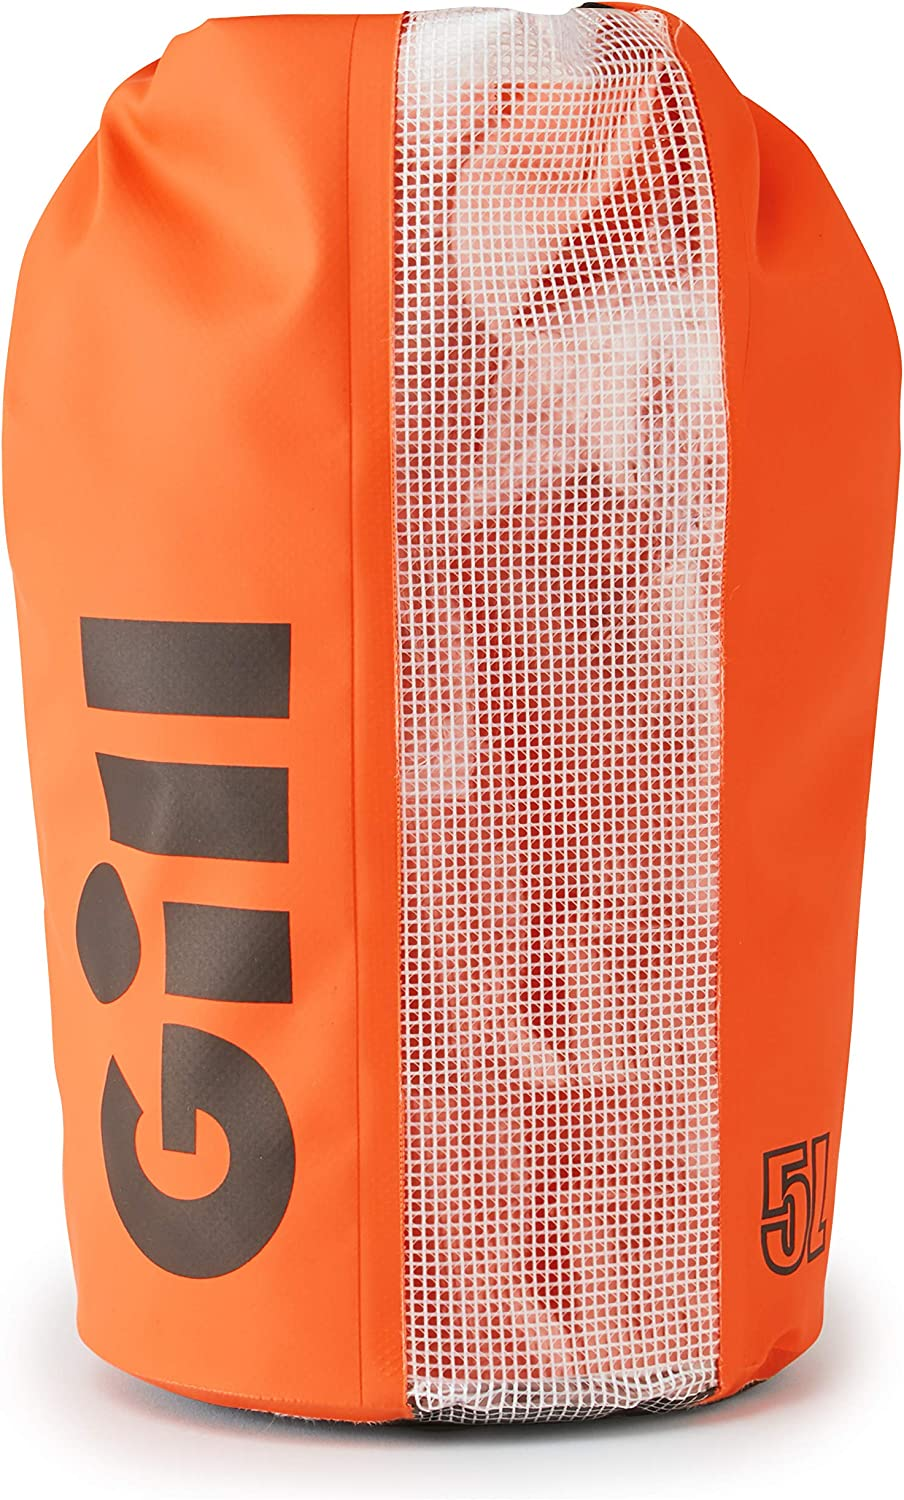 gift Gill Wet Dry All stores are sold Tango 5L Puncture Resistant Waterproof Sprayproof